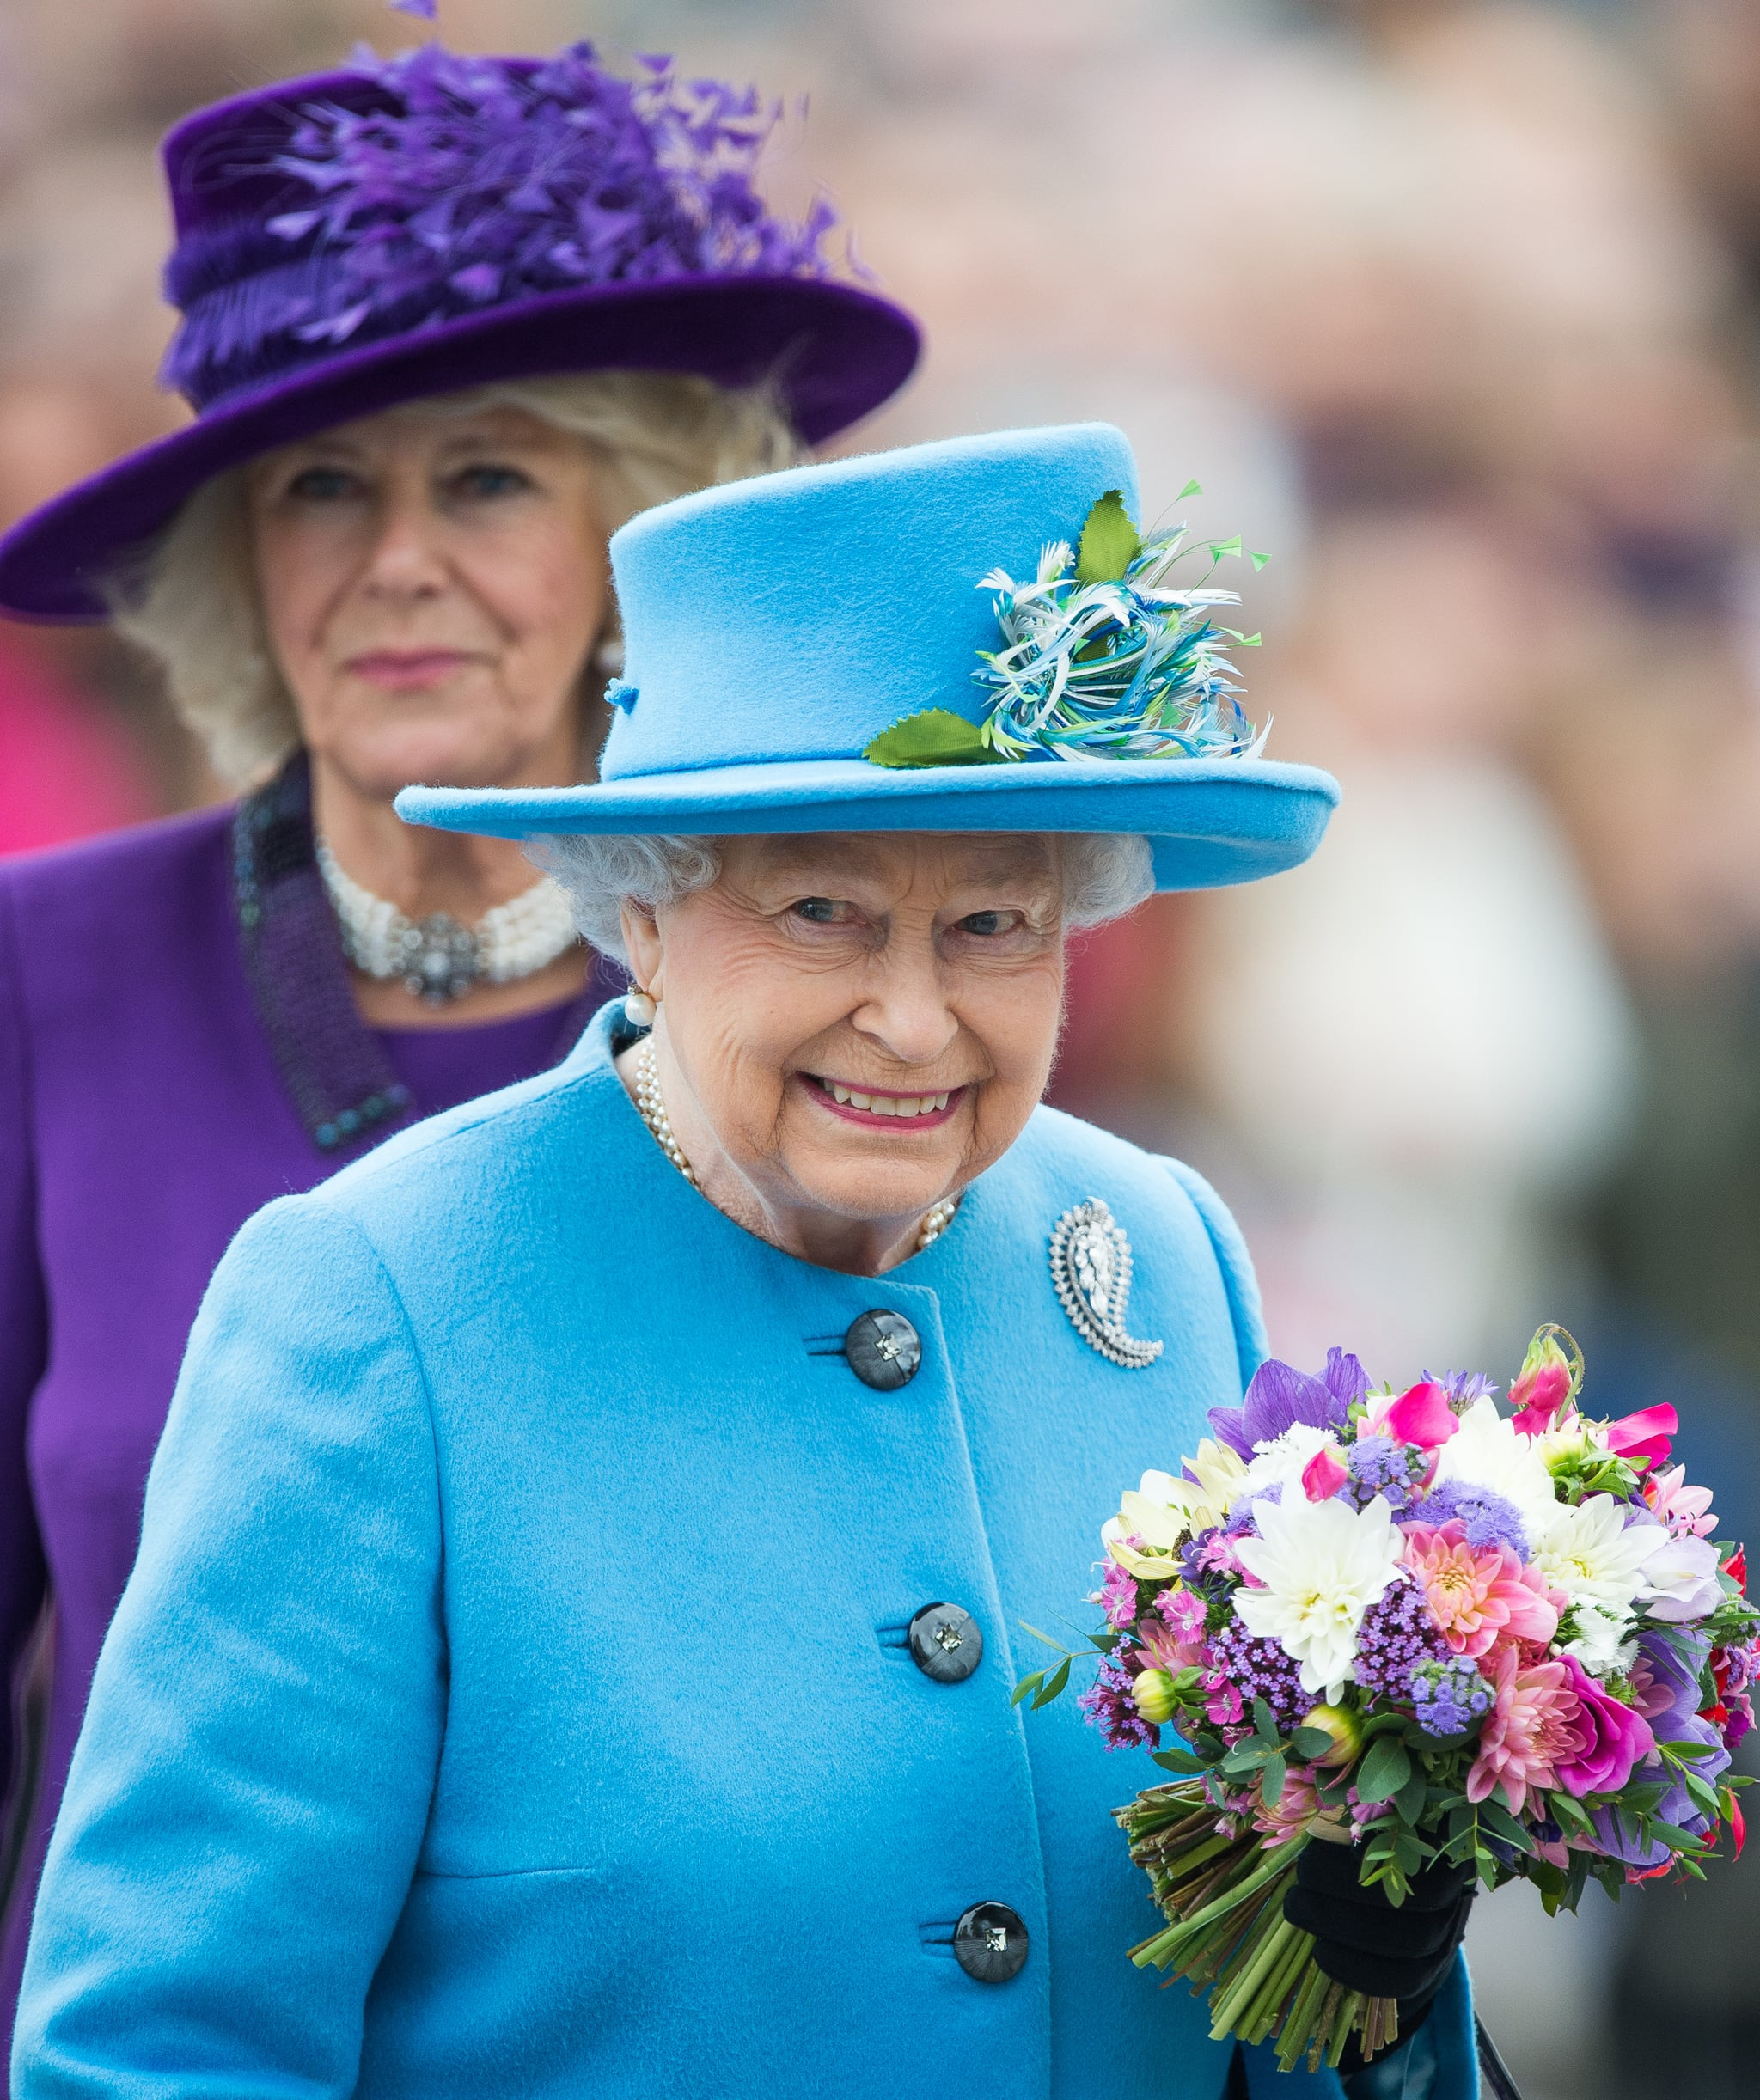 POUNDBURY, DORSET - OCTOBER 27:  Queen Elizabeth II and Camilla, Duchess of Cornwall tour Queen Mother Square on October 27, 2016 in Poundbury, Dorset.  (Photo by Samir Hussein/WireImage)